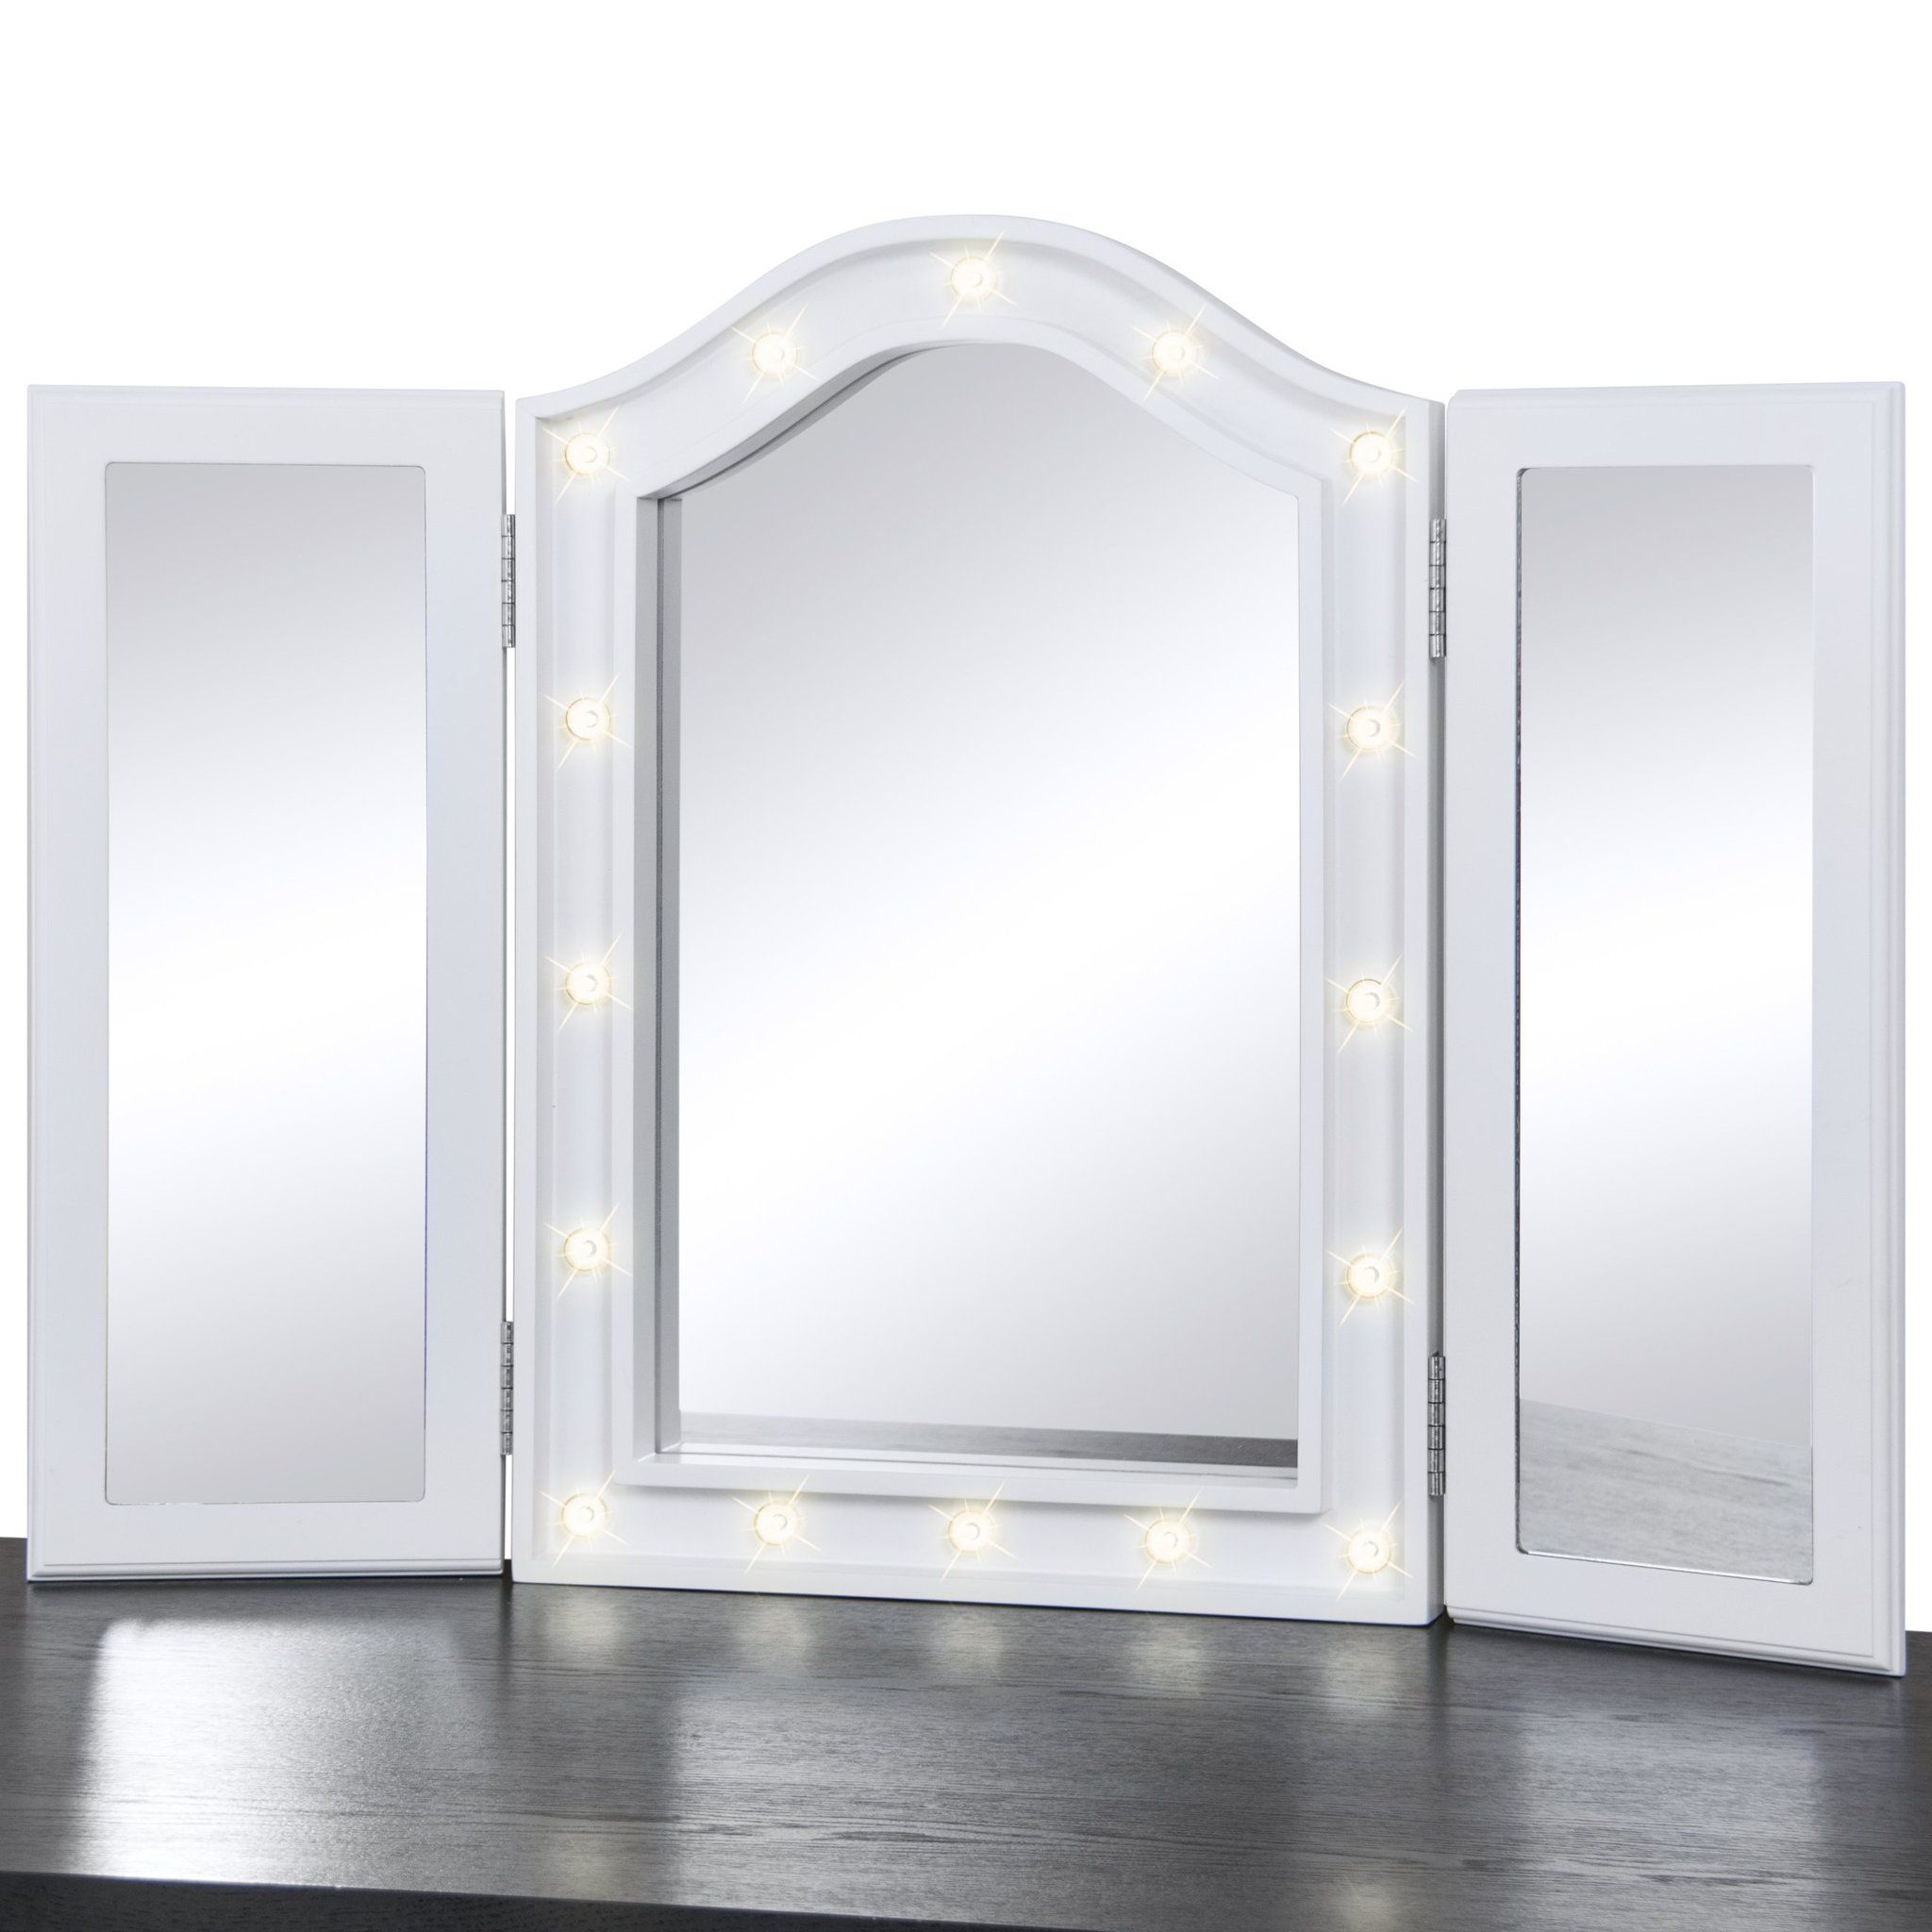 Tri Fold Vanity Mirror With Lights Lit Tabletop Trifold Vanity Mirror W Led Lights  White  Tri Fold